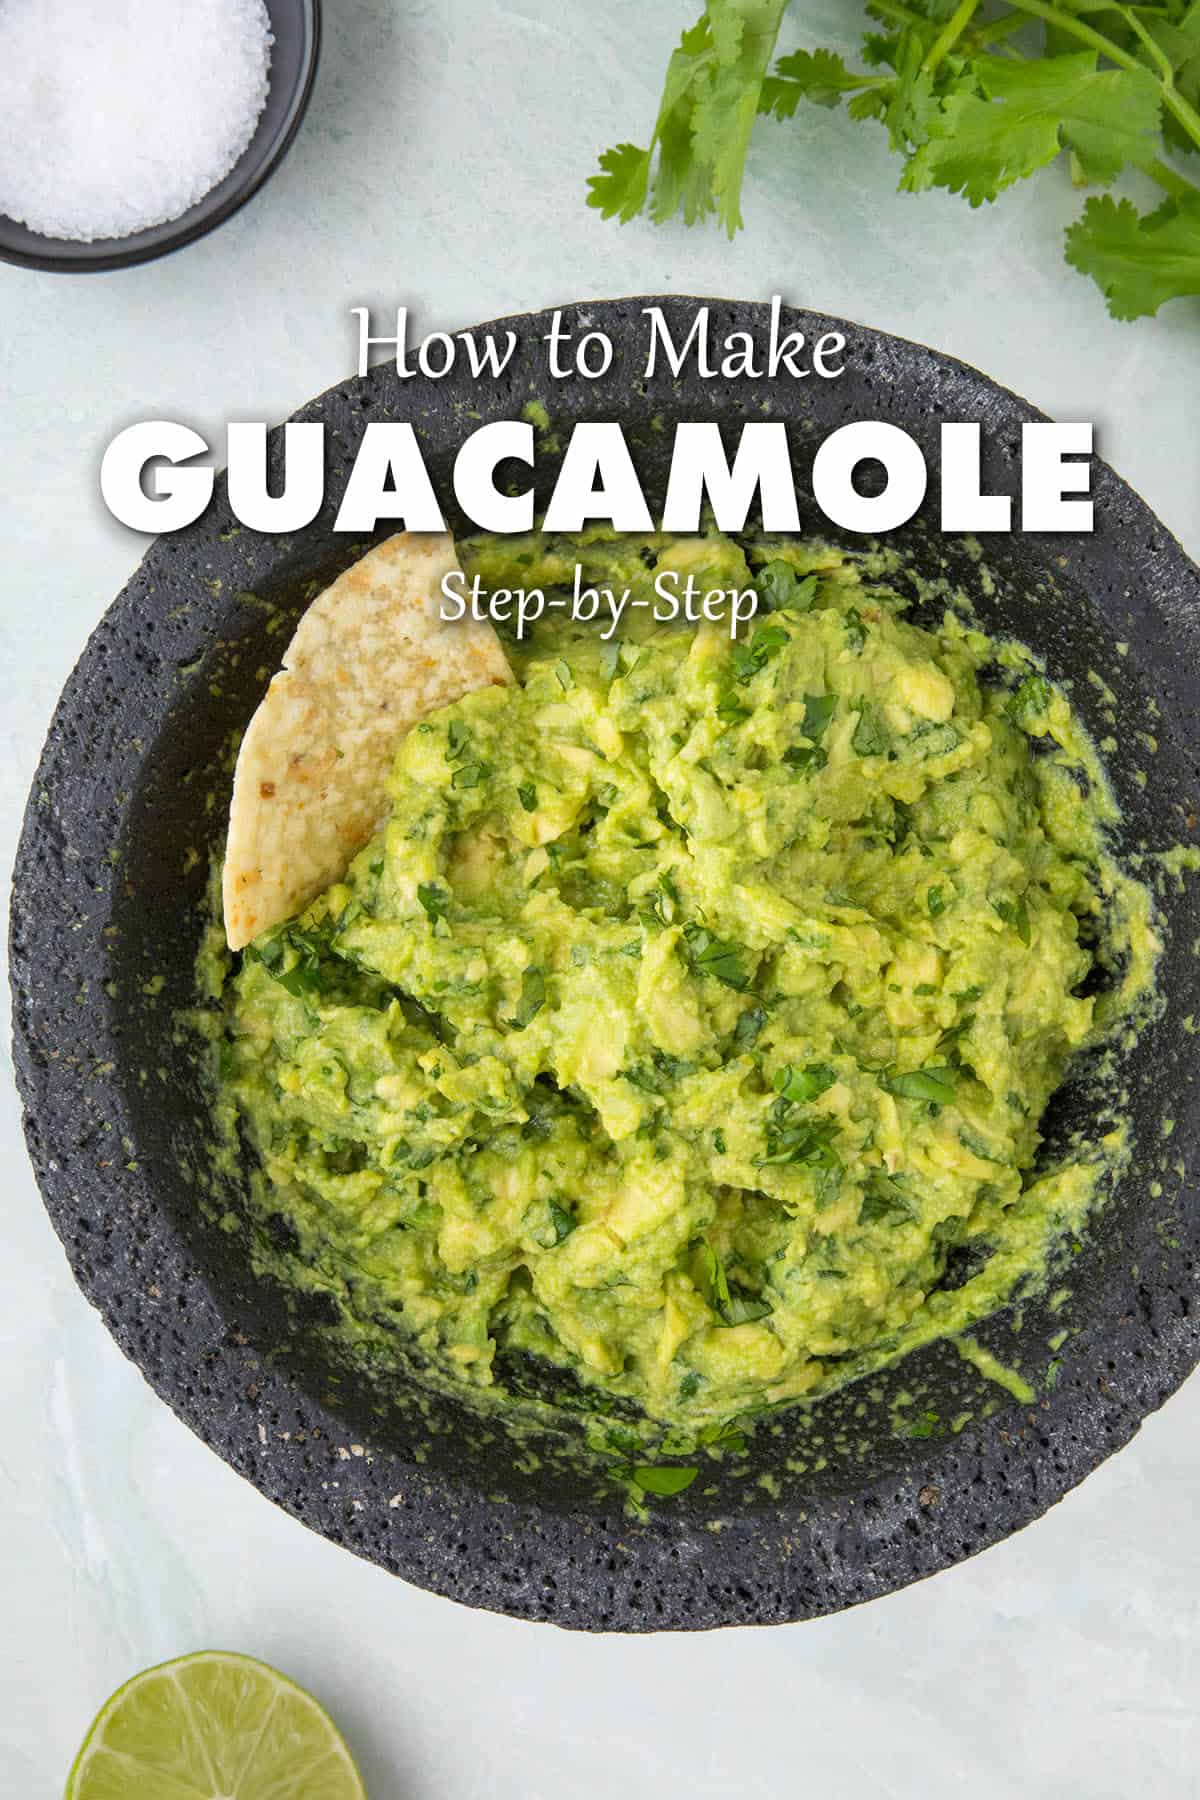 How to Make Guacamole – Step by Step Guide